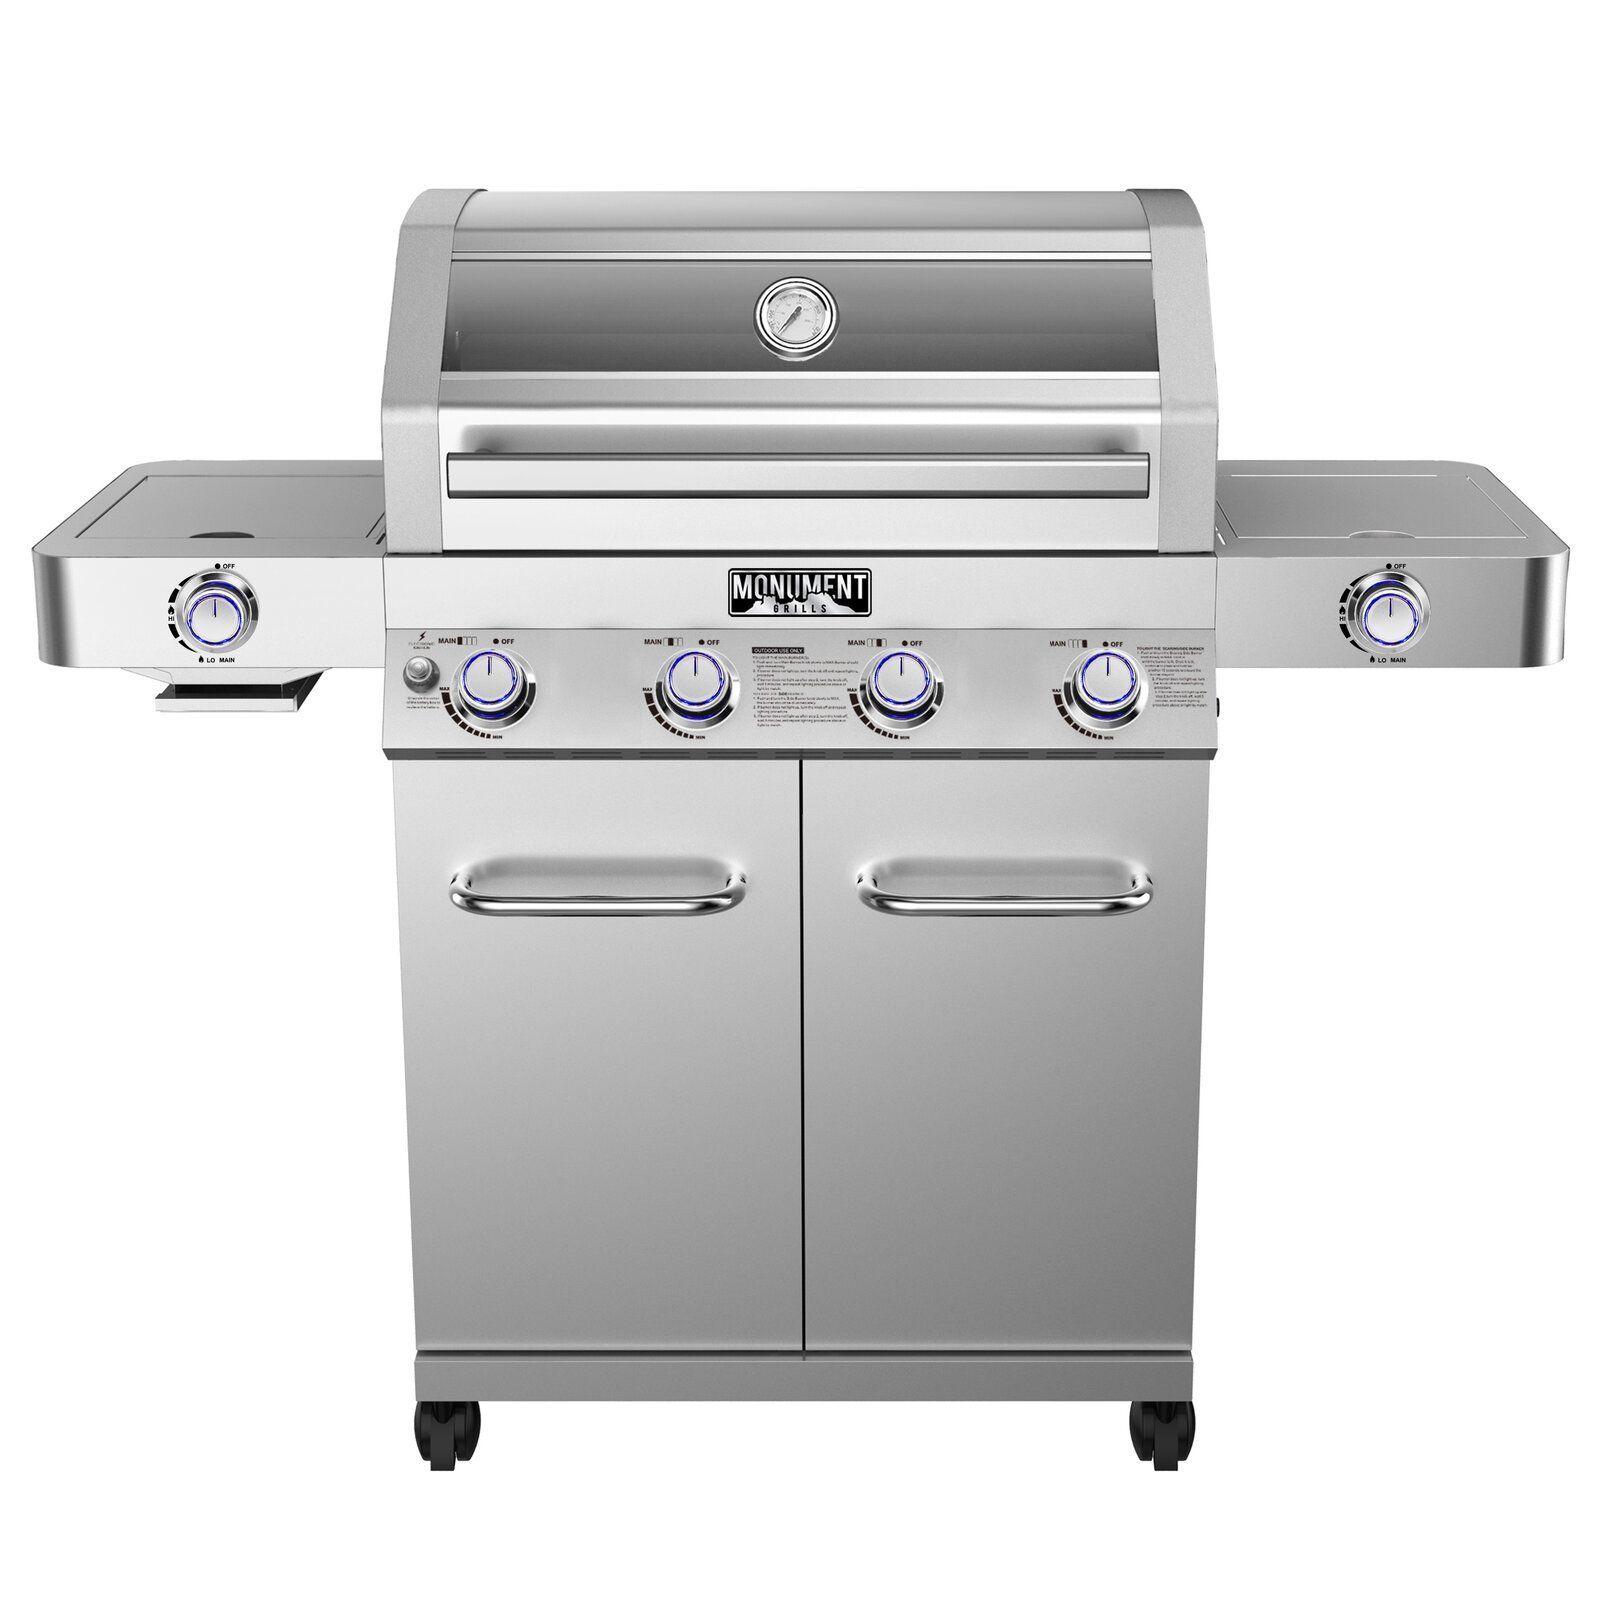 4burner propane gas grill with side burner and